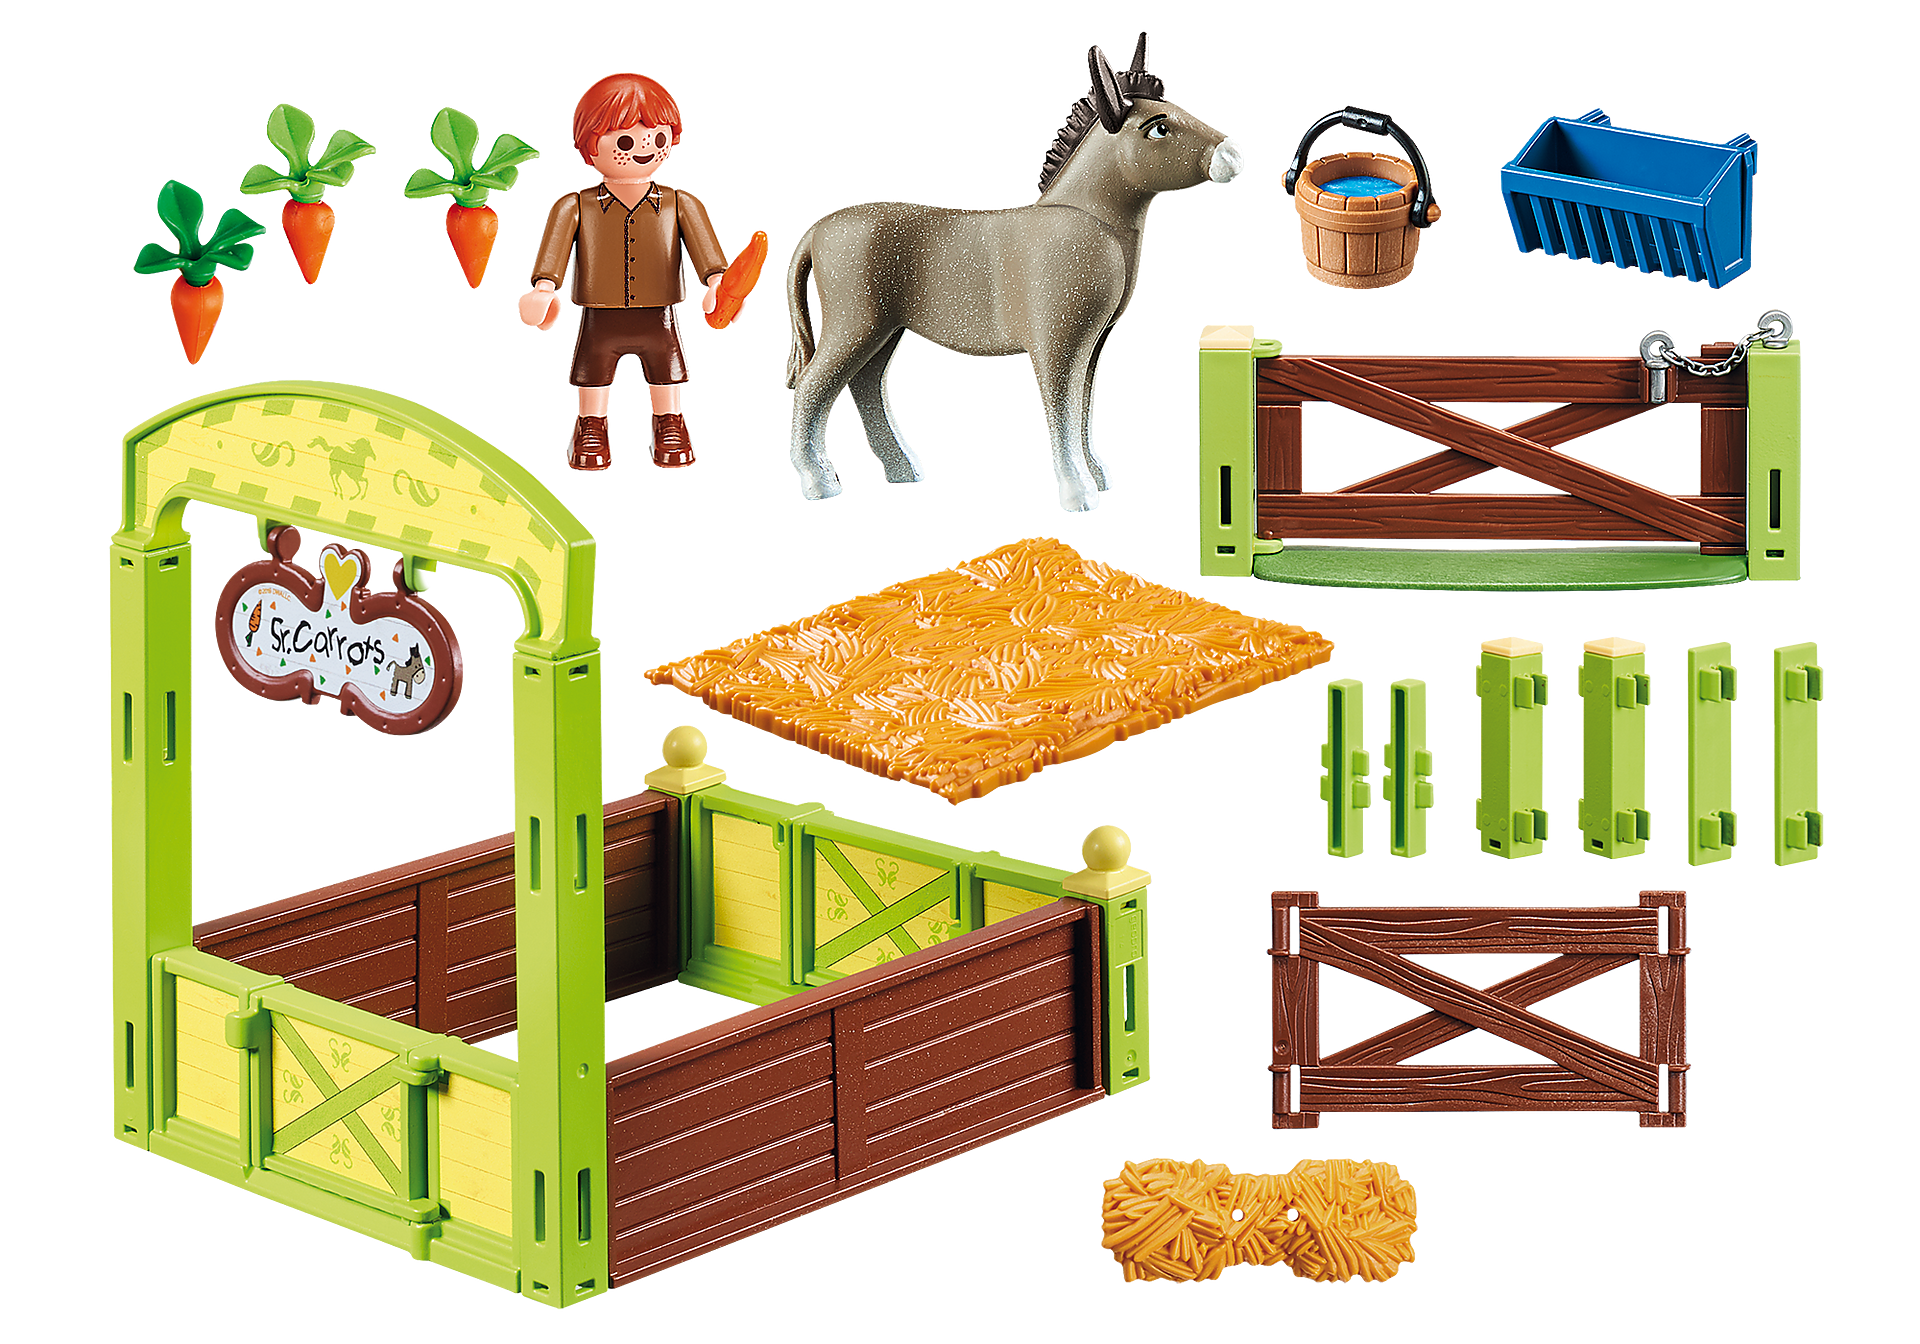 http://media.playmobil.com/i/playmobil/70120_product_box_back/Snips & Señor Carrots with Horse Stall